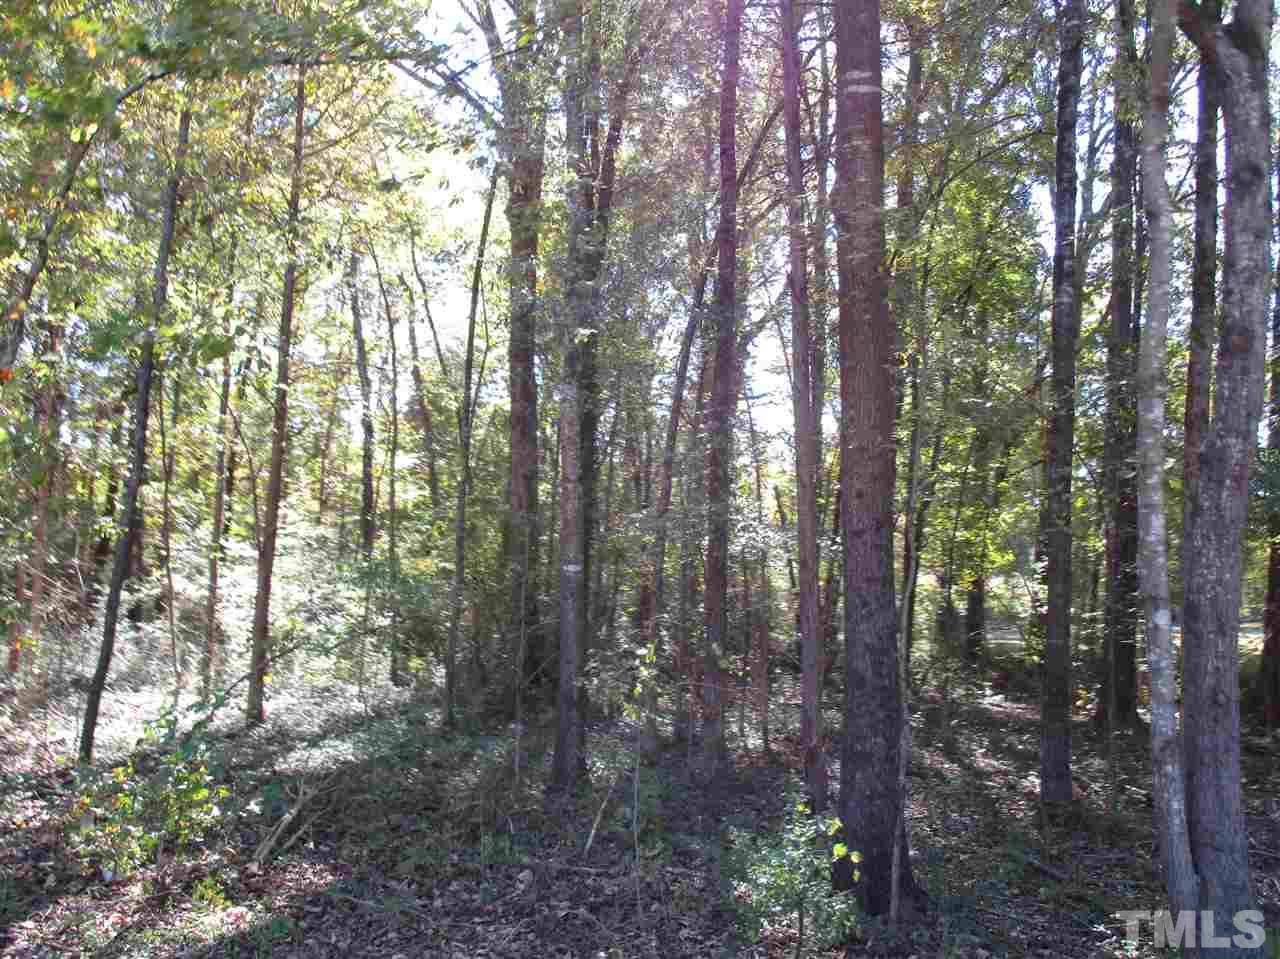 Photo of Lot 3 Pa Will Trail, Green Level, NC 27217